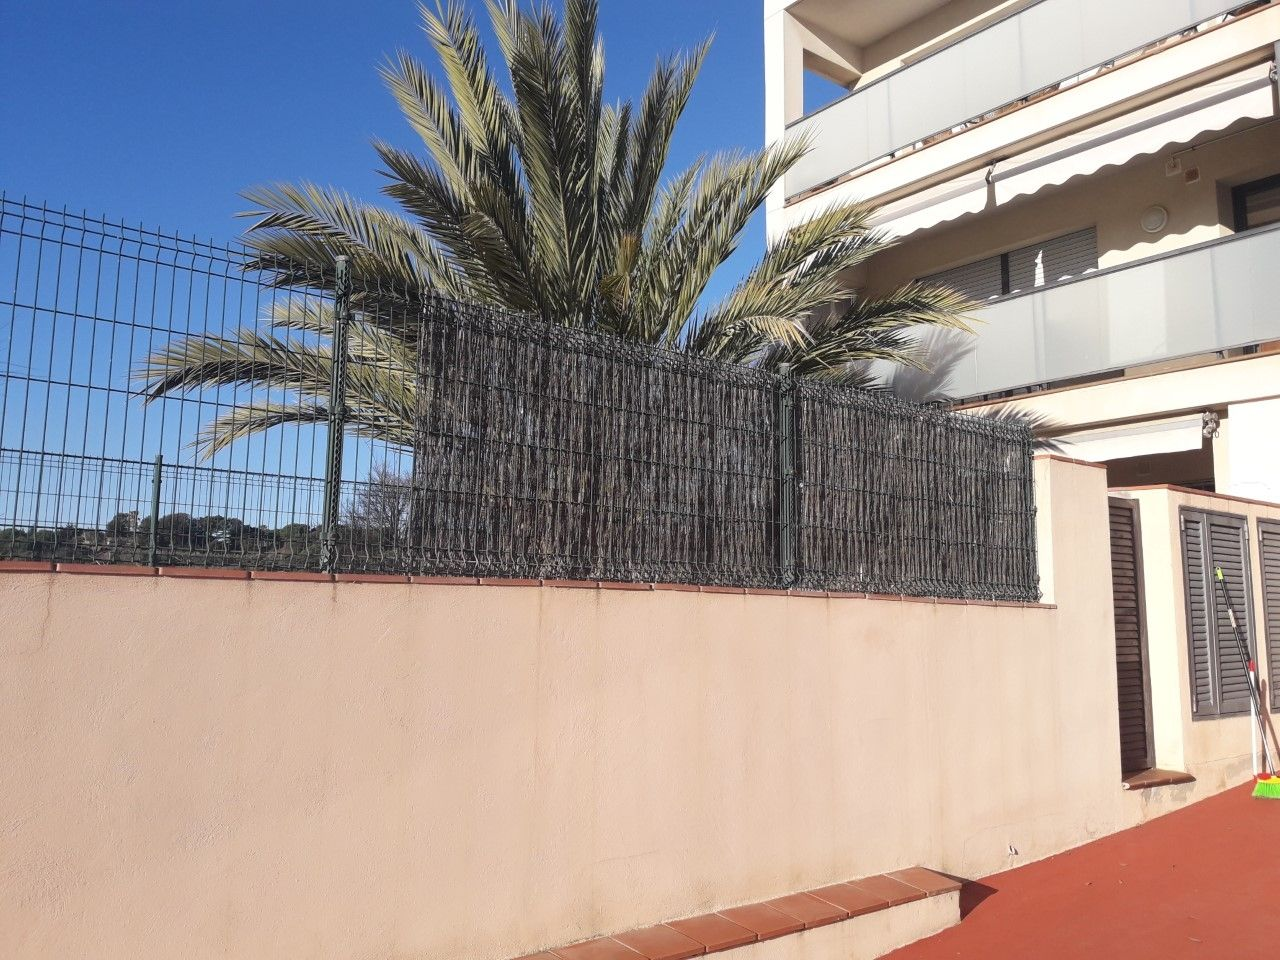 Rent Apartment in Carrer via cannetum, 18. Bajos con dos jardines